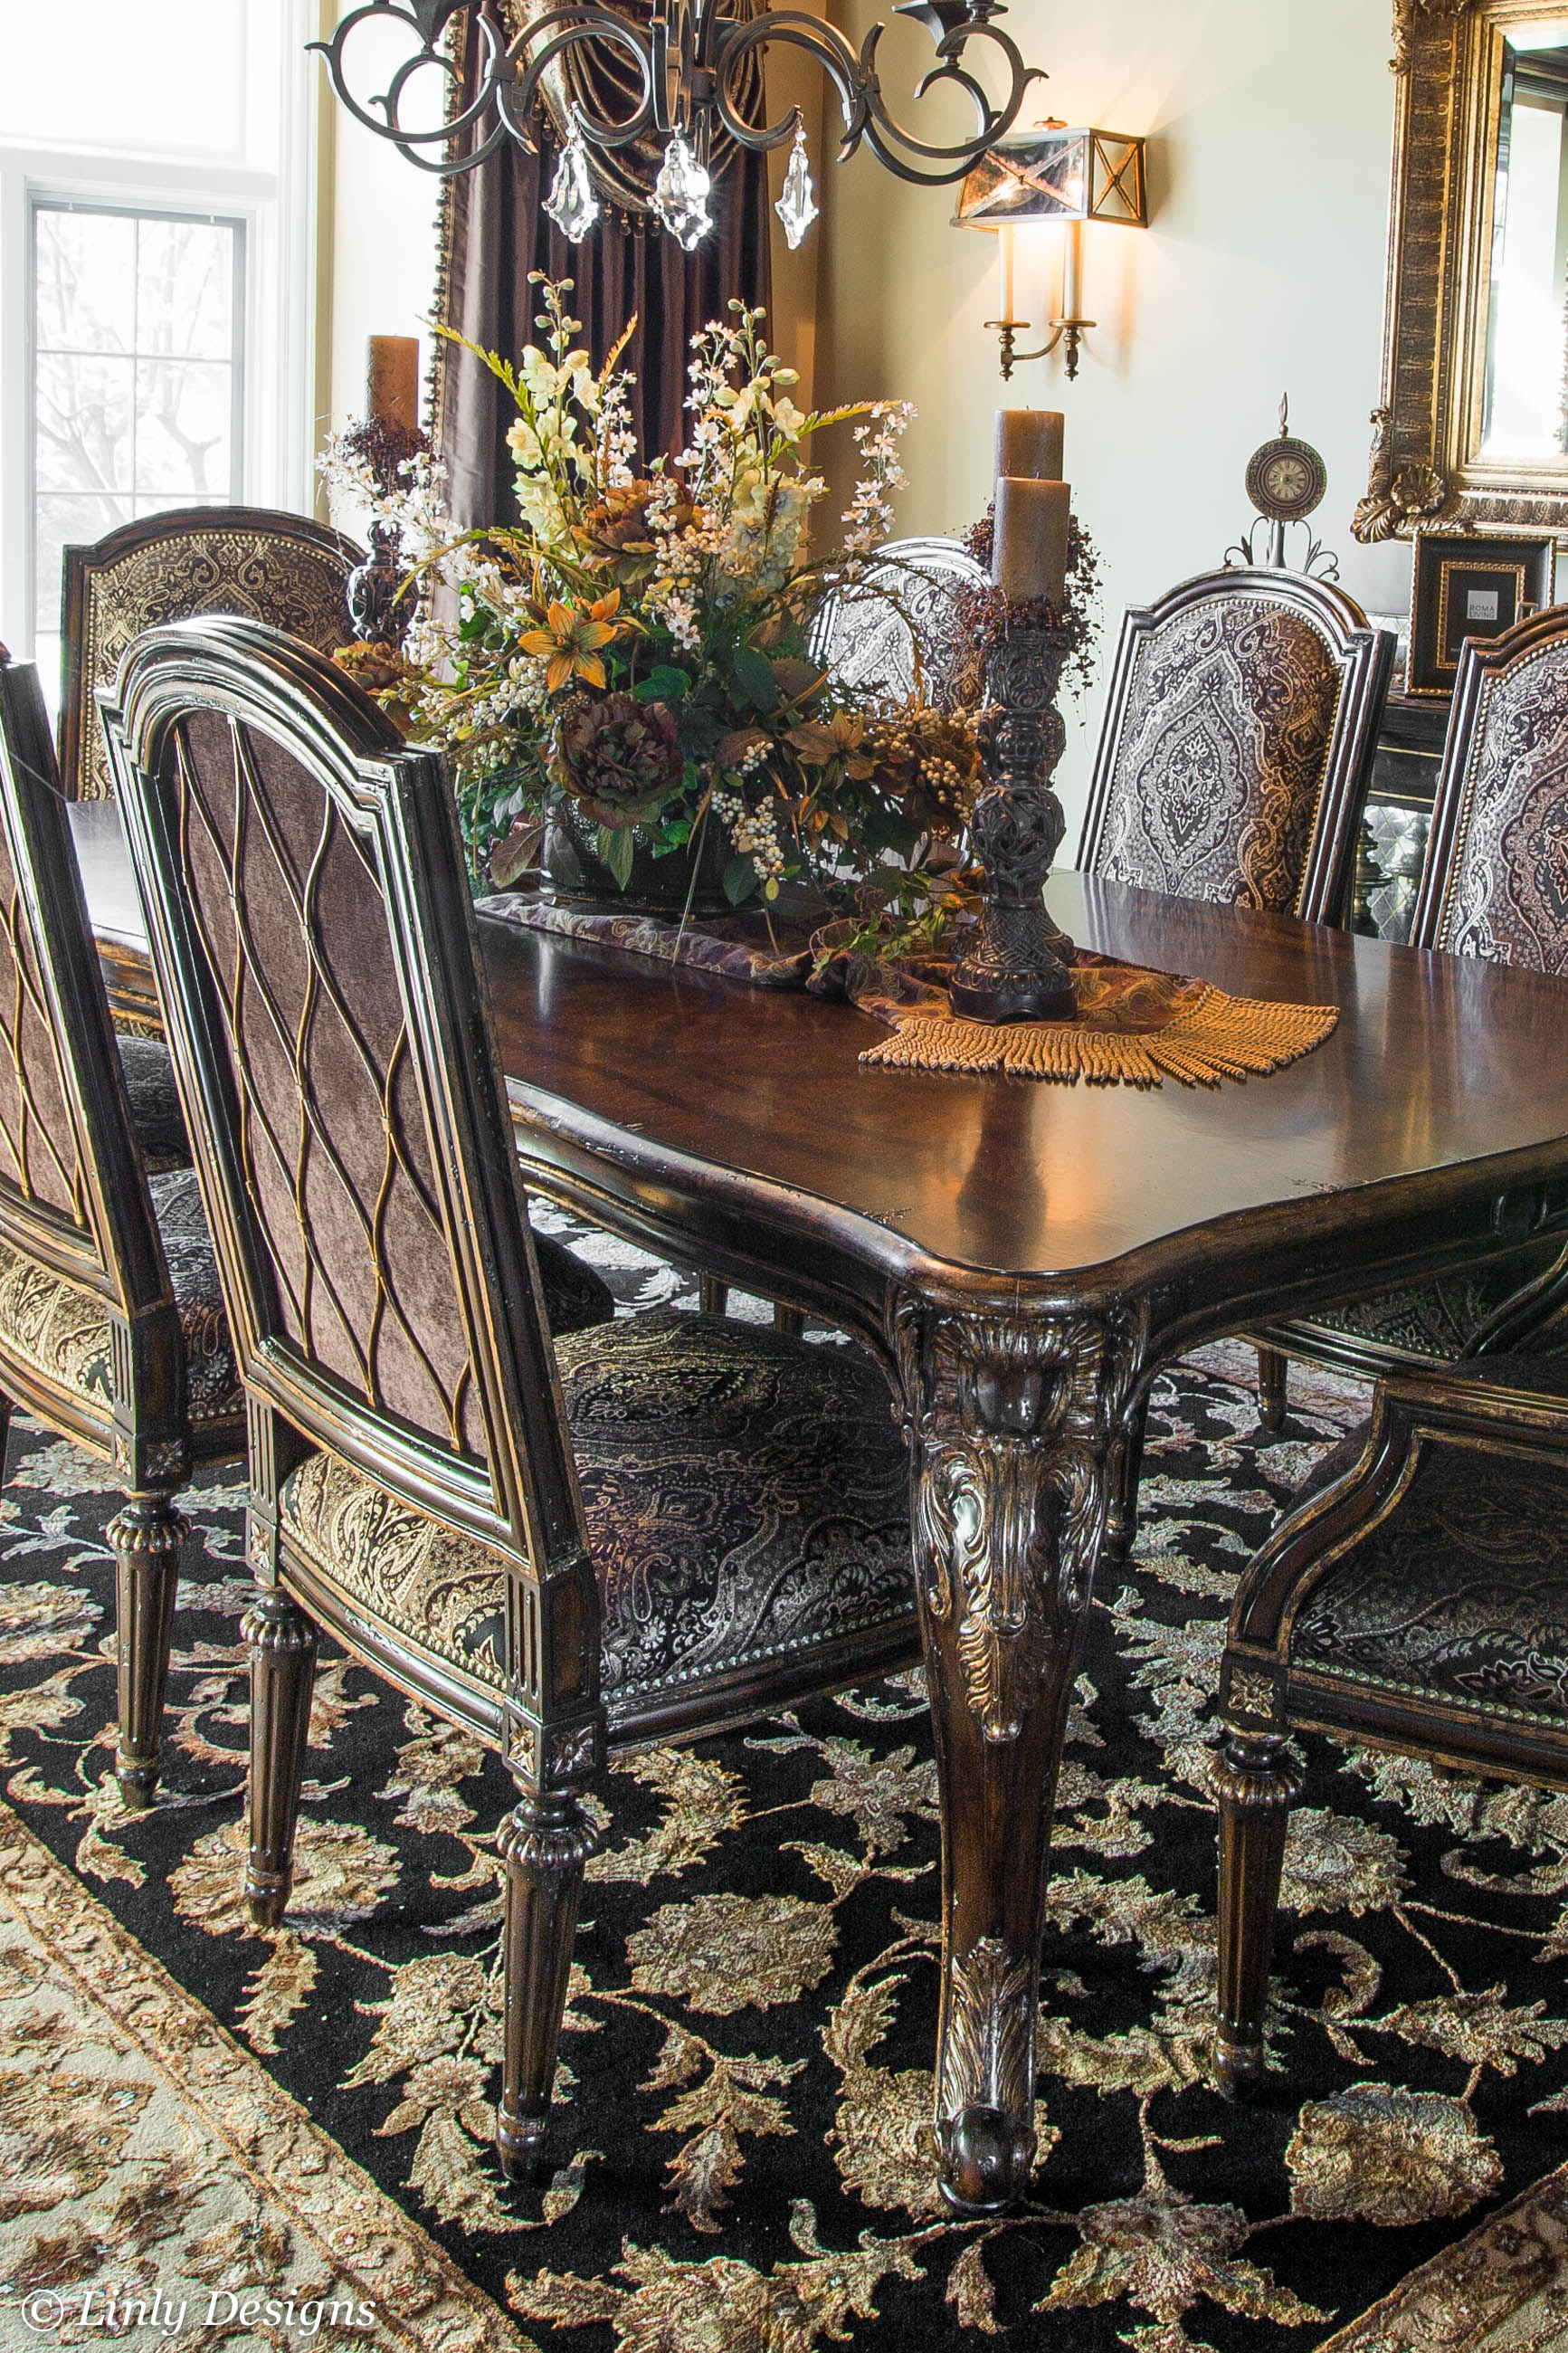 South barrington dining room project Formal dining table centerpiece ideas